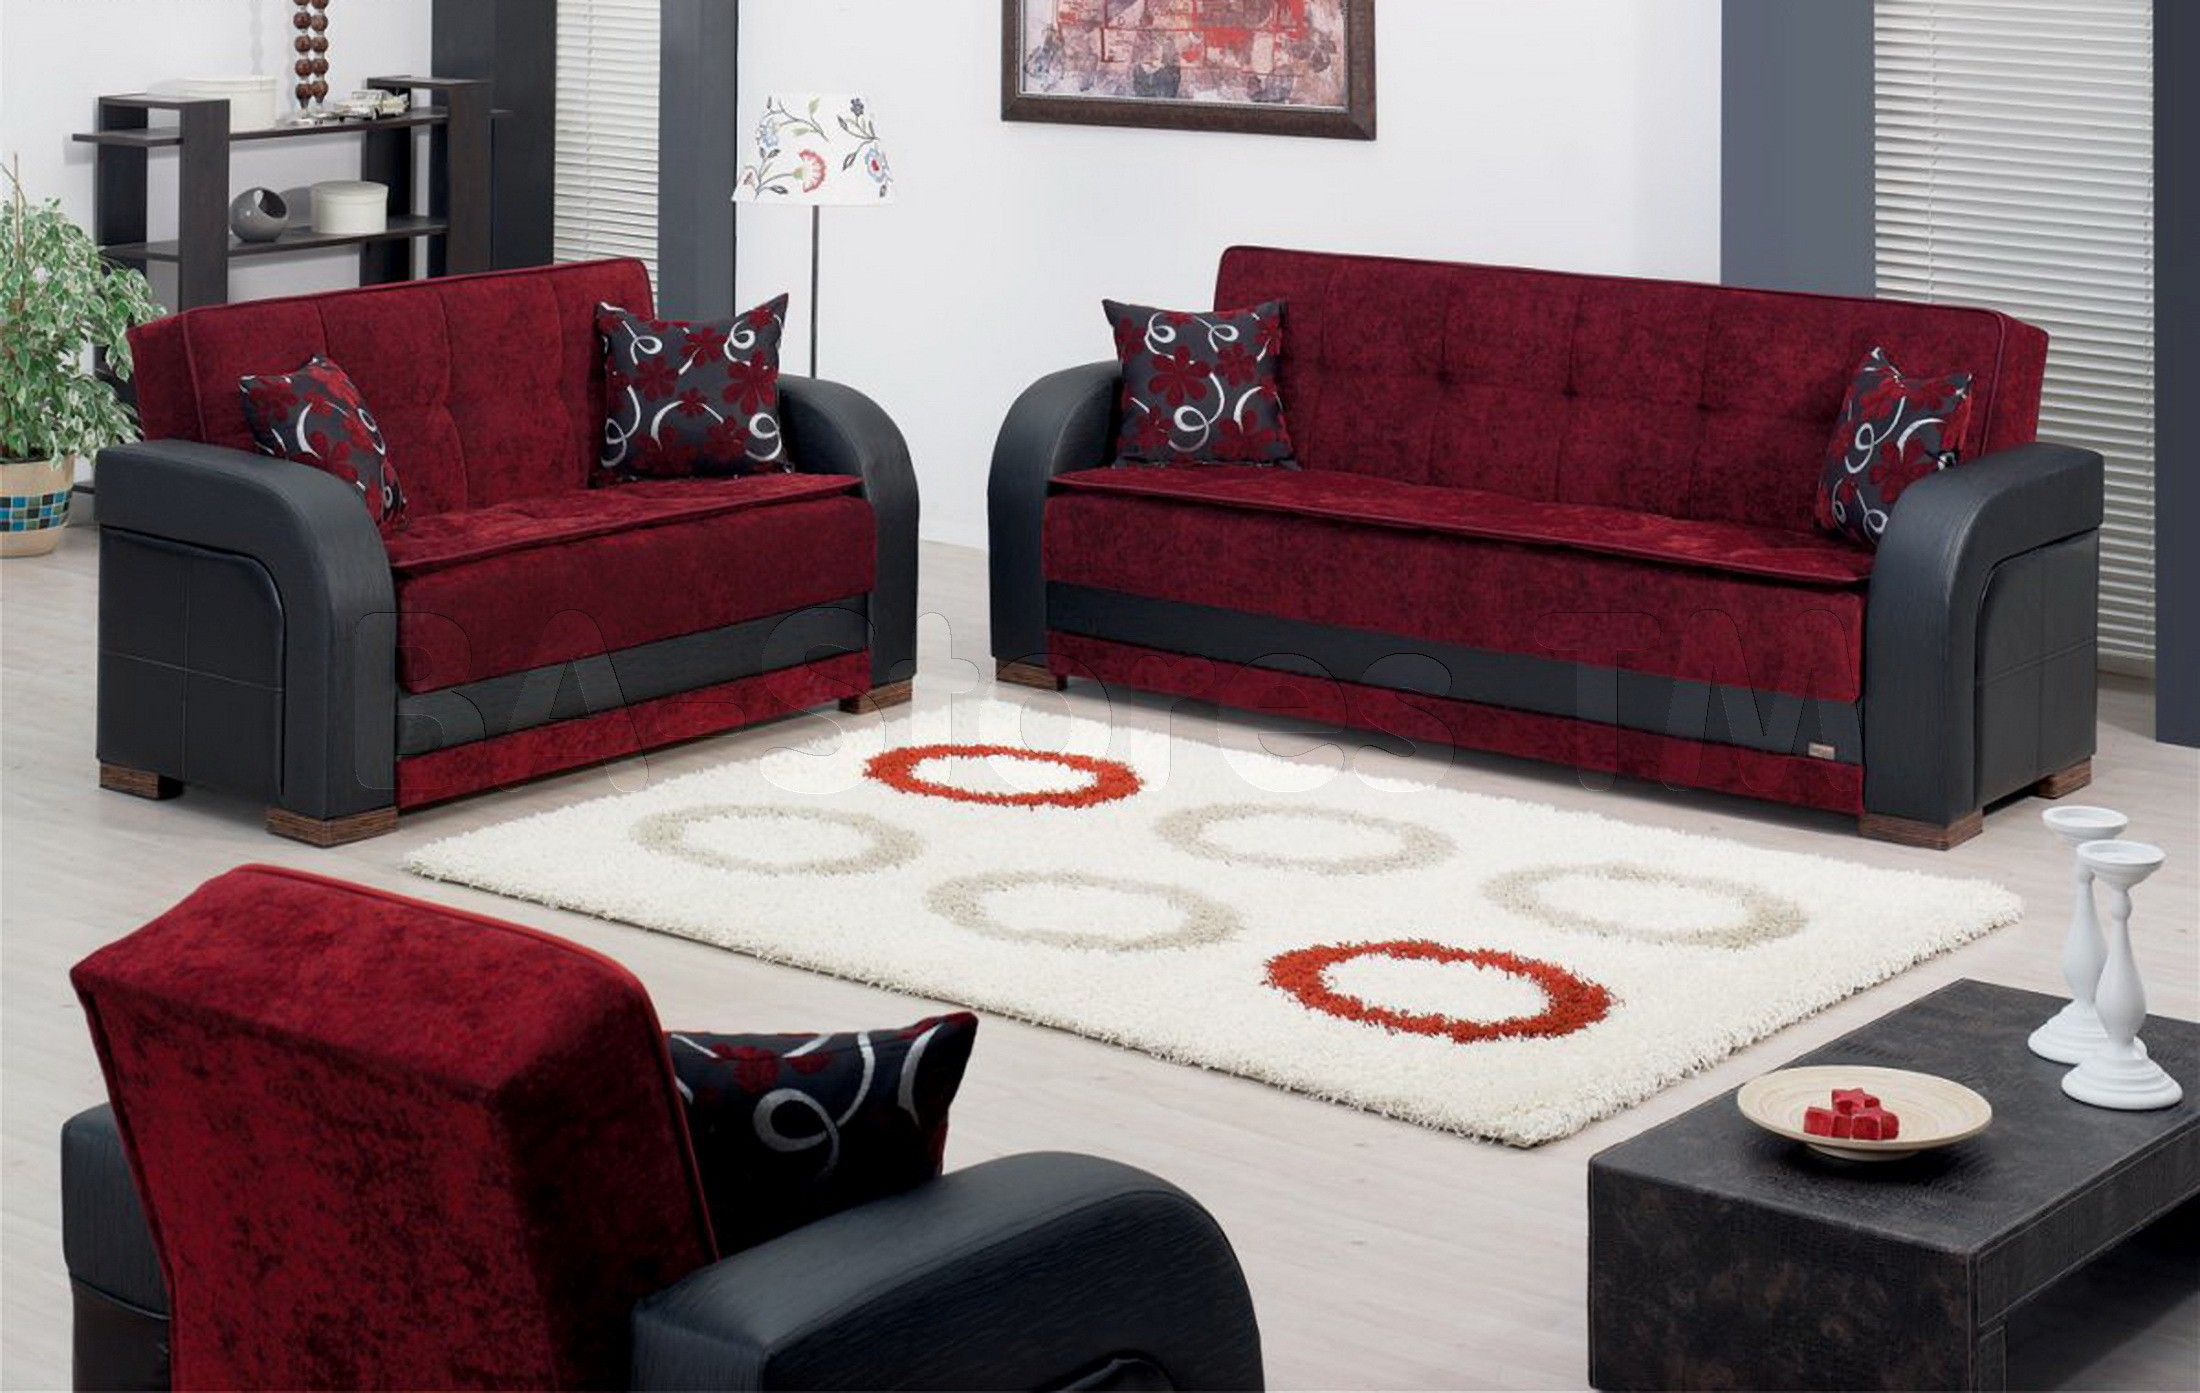 Sofa and Loveseat Covers Sets top sofa and Loveseat Covers sofa and Loveseat Covers Sets Unique Collection